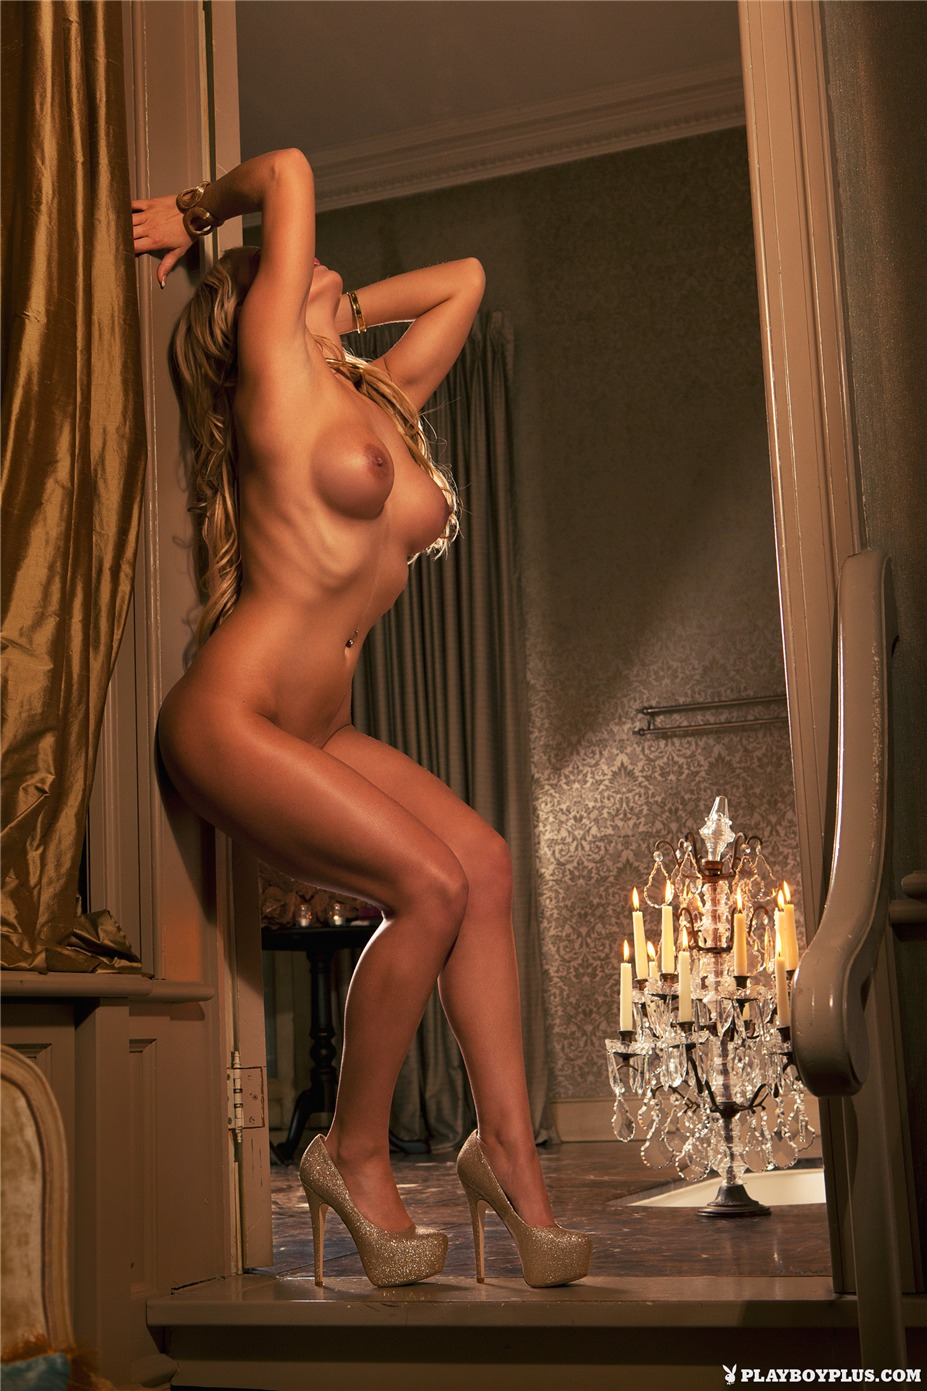 Joy van Velsen - Miss February 2013 Playboy Netherlands